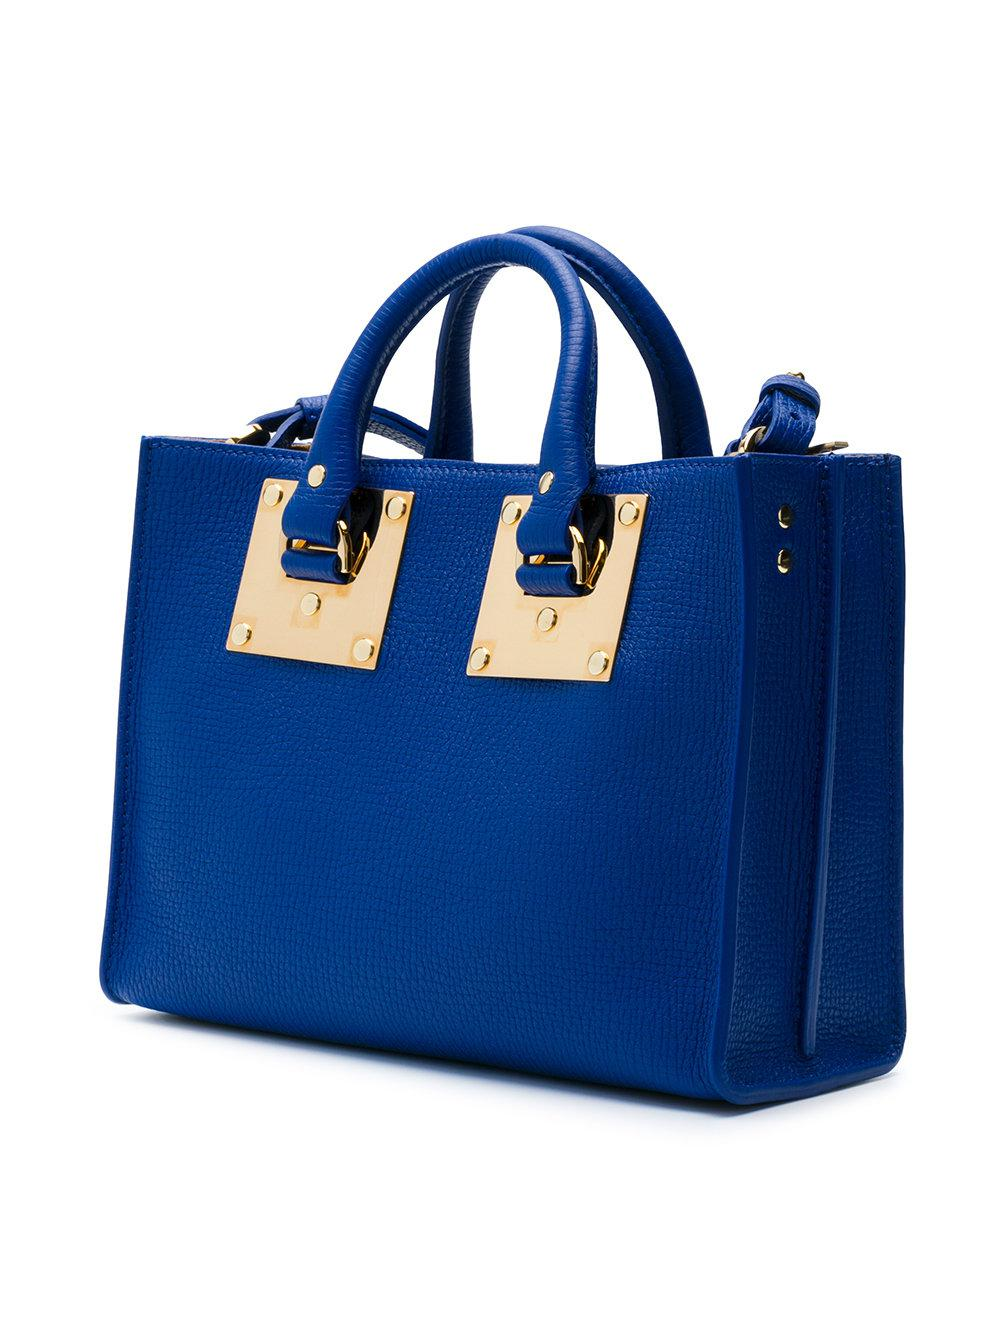 Sophie Hulme Leather Zipped Tote Bag in Blue